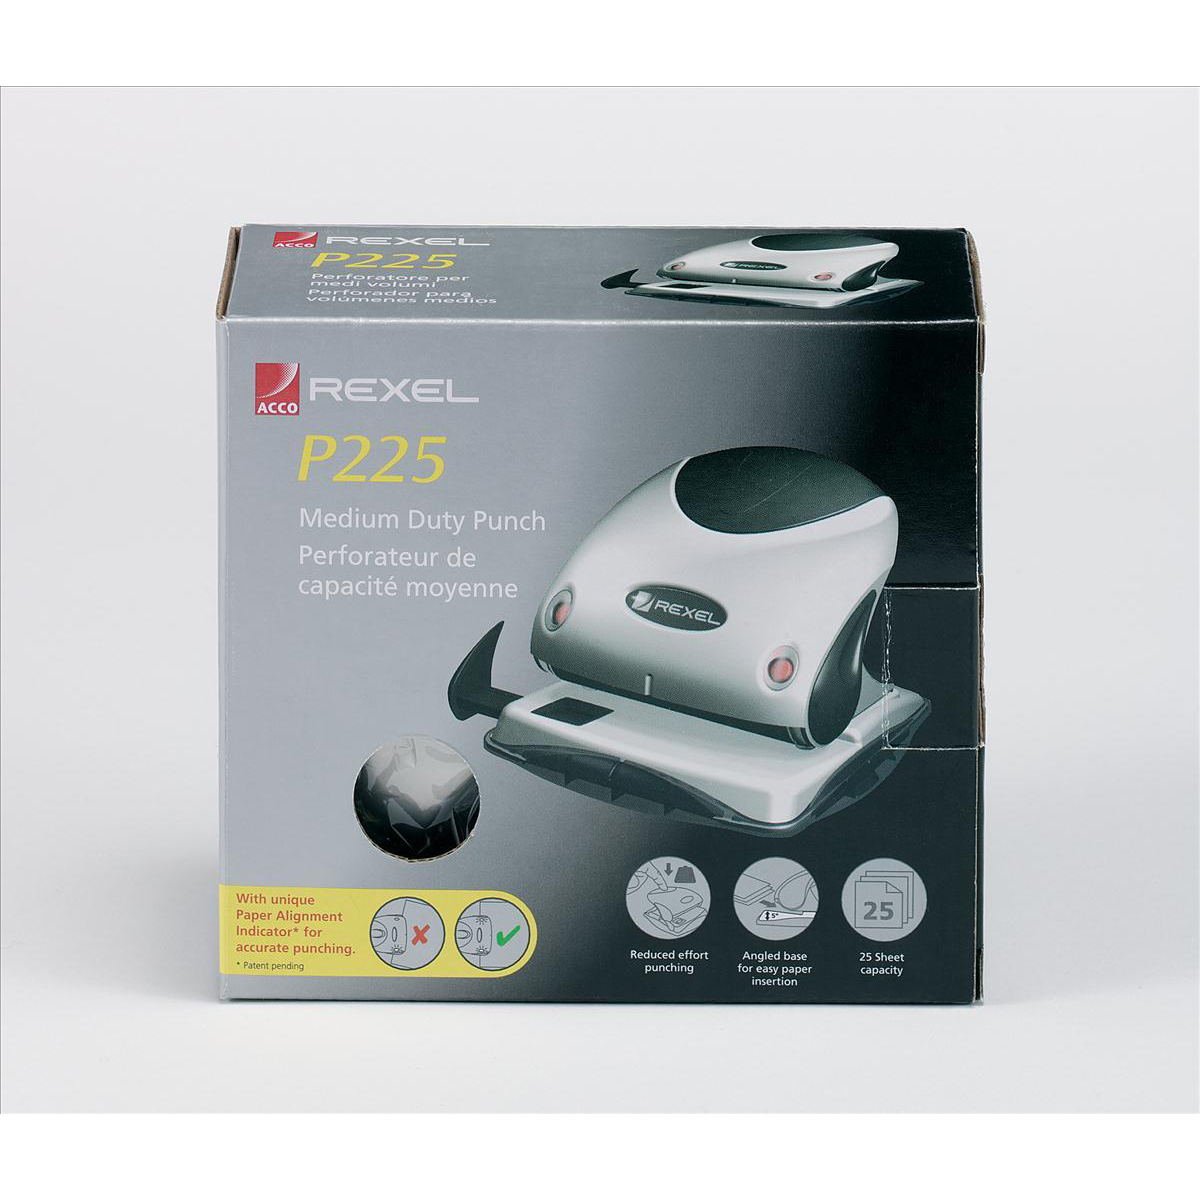 Rexel P225 Punch 2-Hole Robust Metal with Nameplate Capacity 25x 80gsm Silver and Blue Ref 21007445